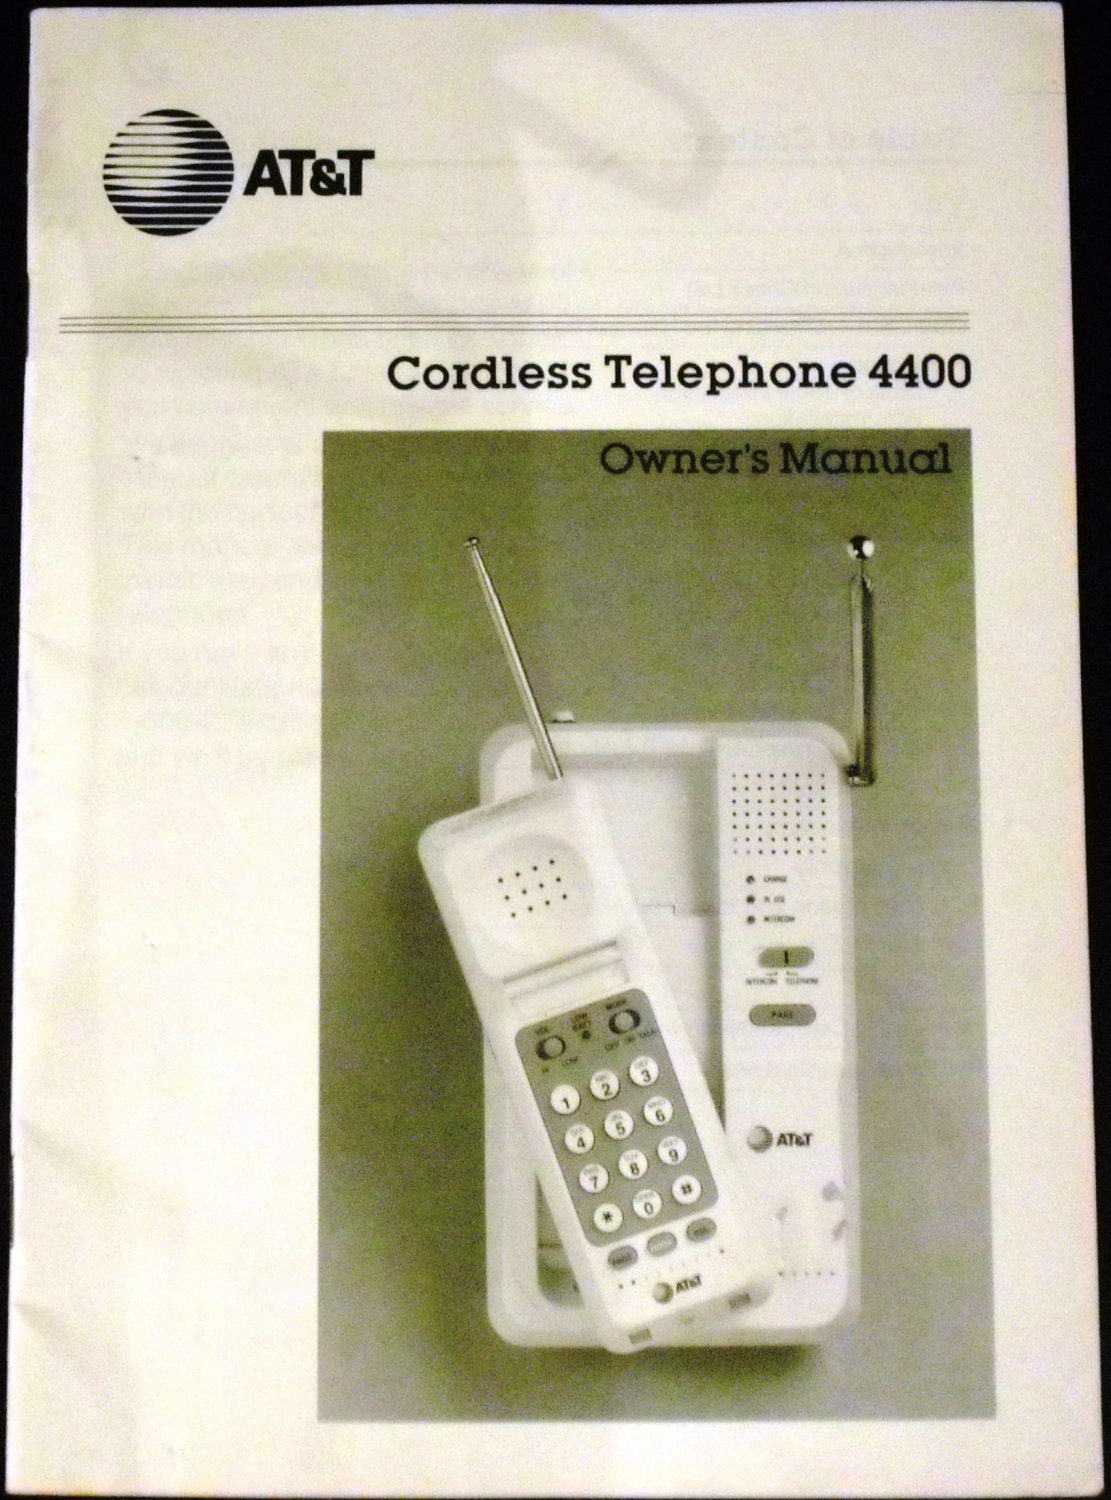 AT&T Cordless Telephone 4400 Owner's Manual 1985